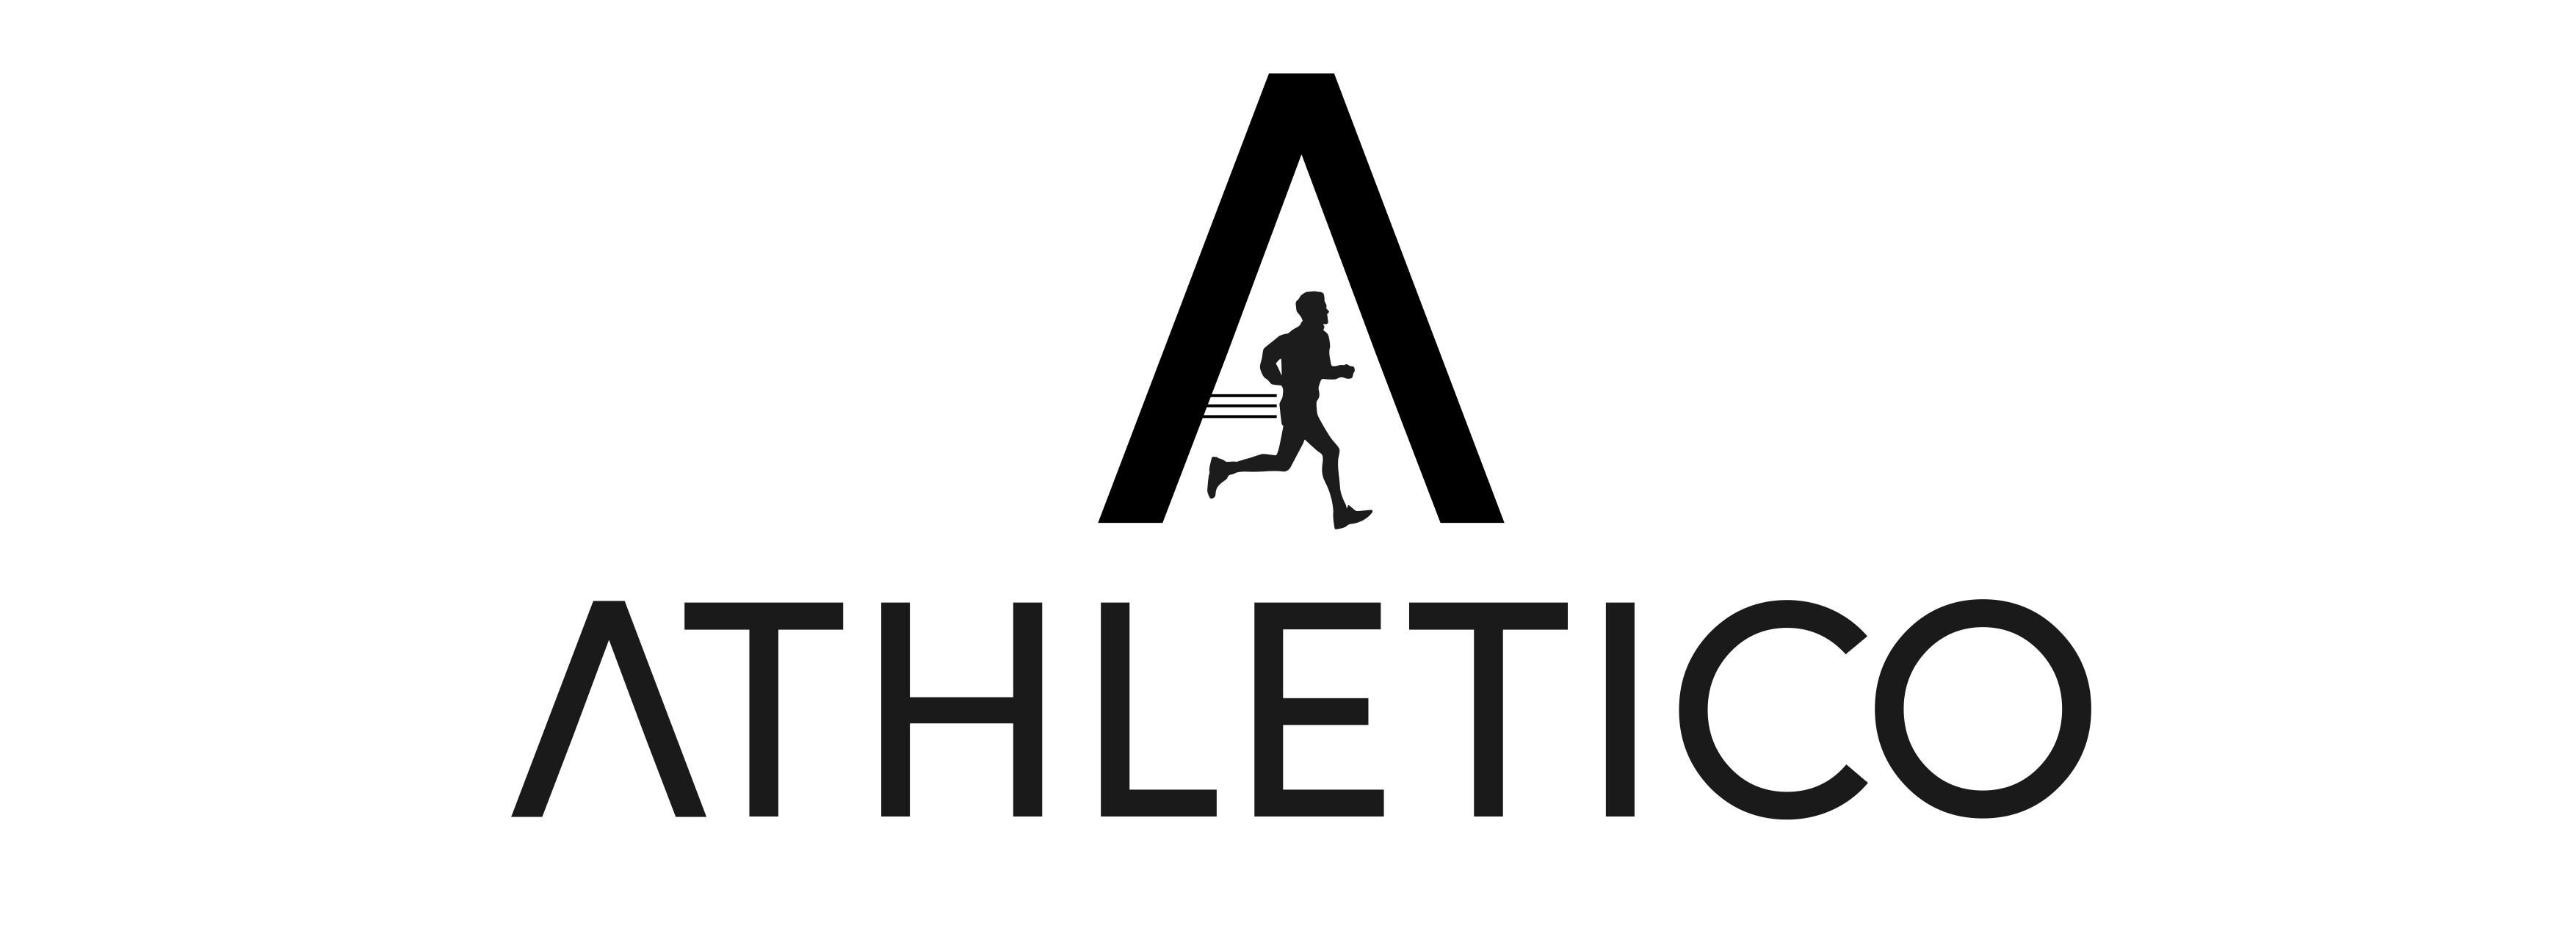 Athletico logo png